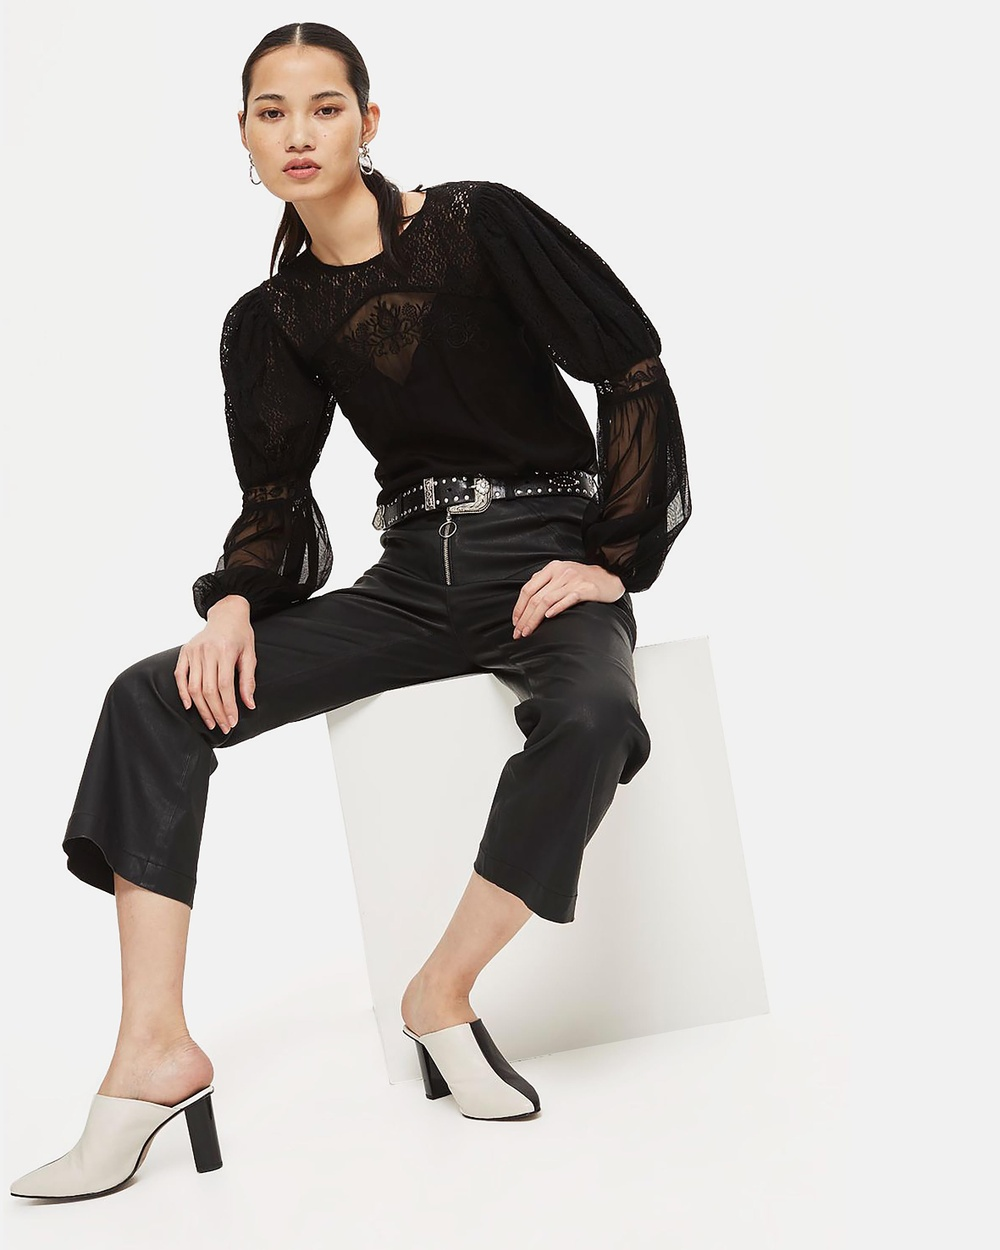 TOPSHOP Lace Mix Blouson Top Tops Black Lace Mix Blouson Top